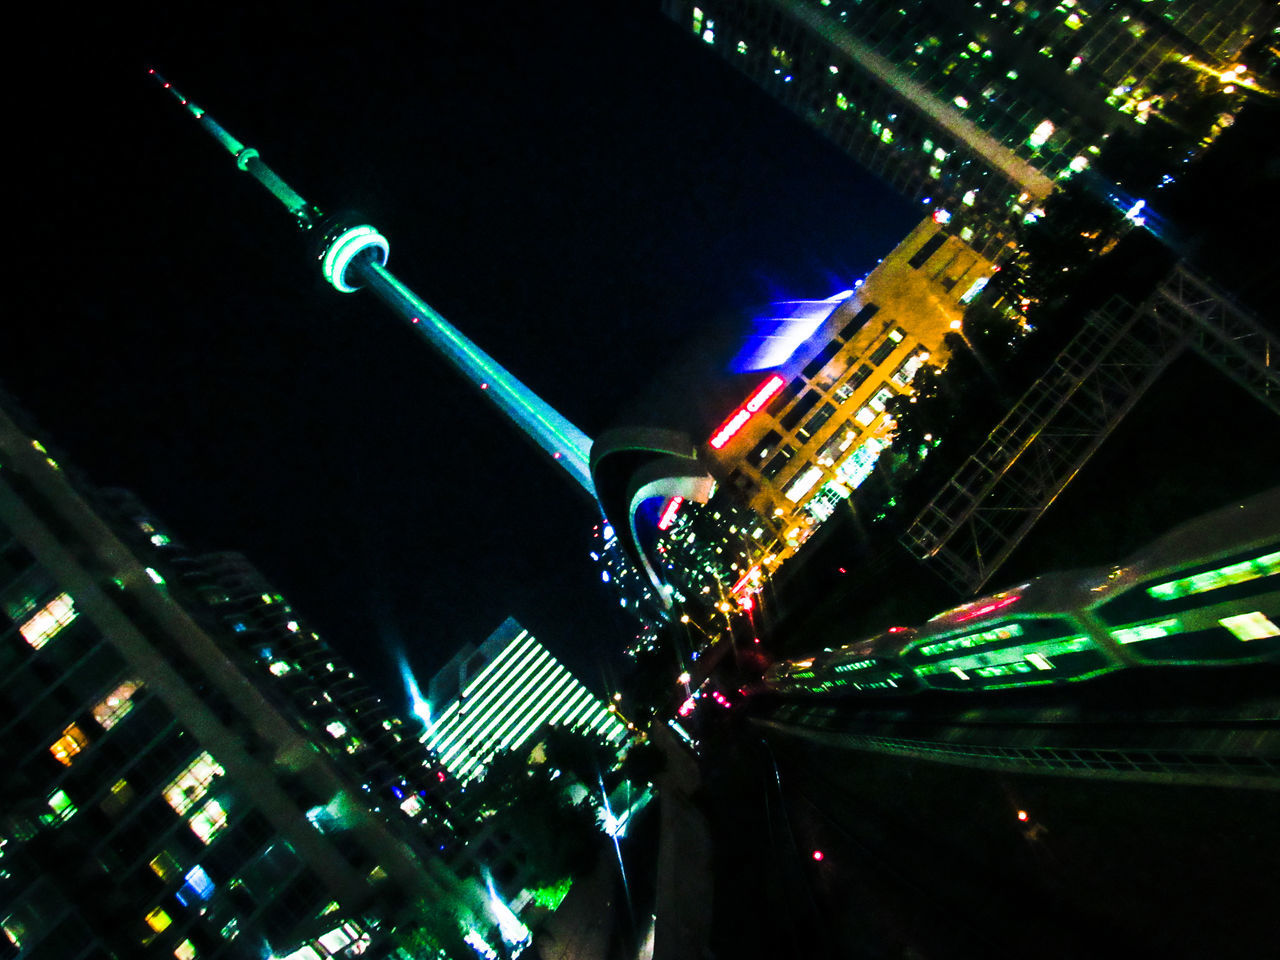 All night transport in Canada's liveliest city Architecture Built Structure Capital Cities  City City Life City Street Cityscape Cntower Downtowntoronto Göbüş Illuminated Lighting Equipment Night No People Travel Destinations